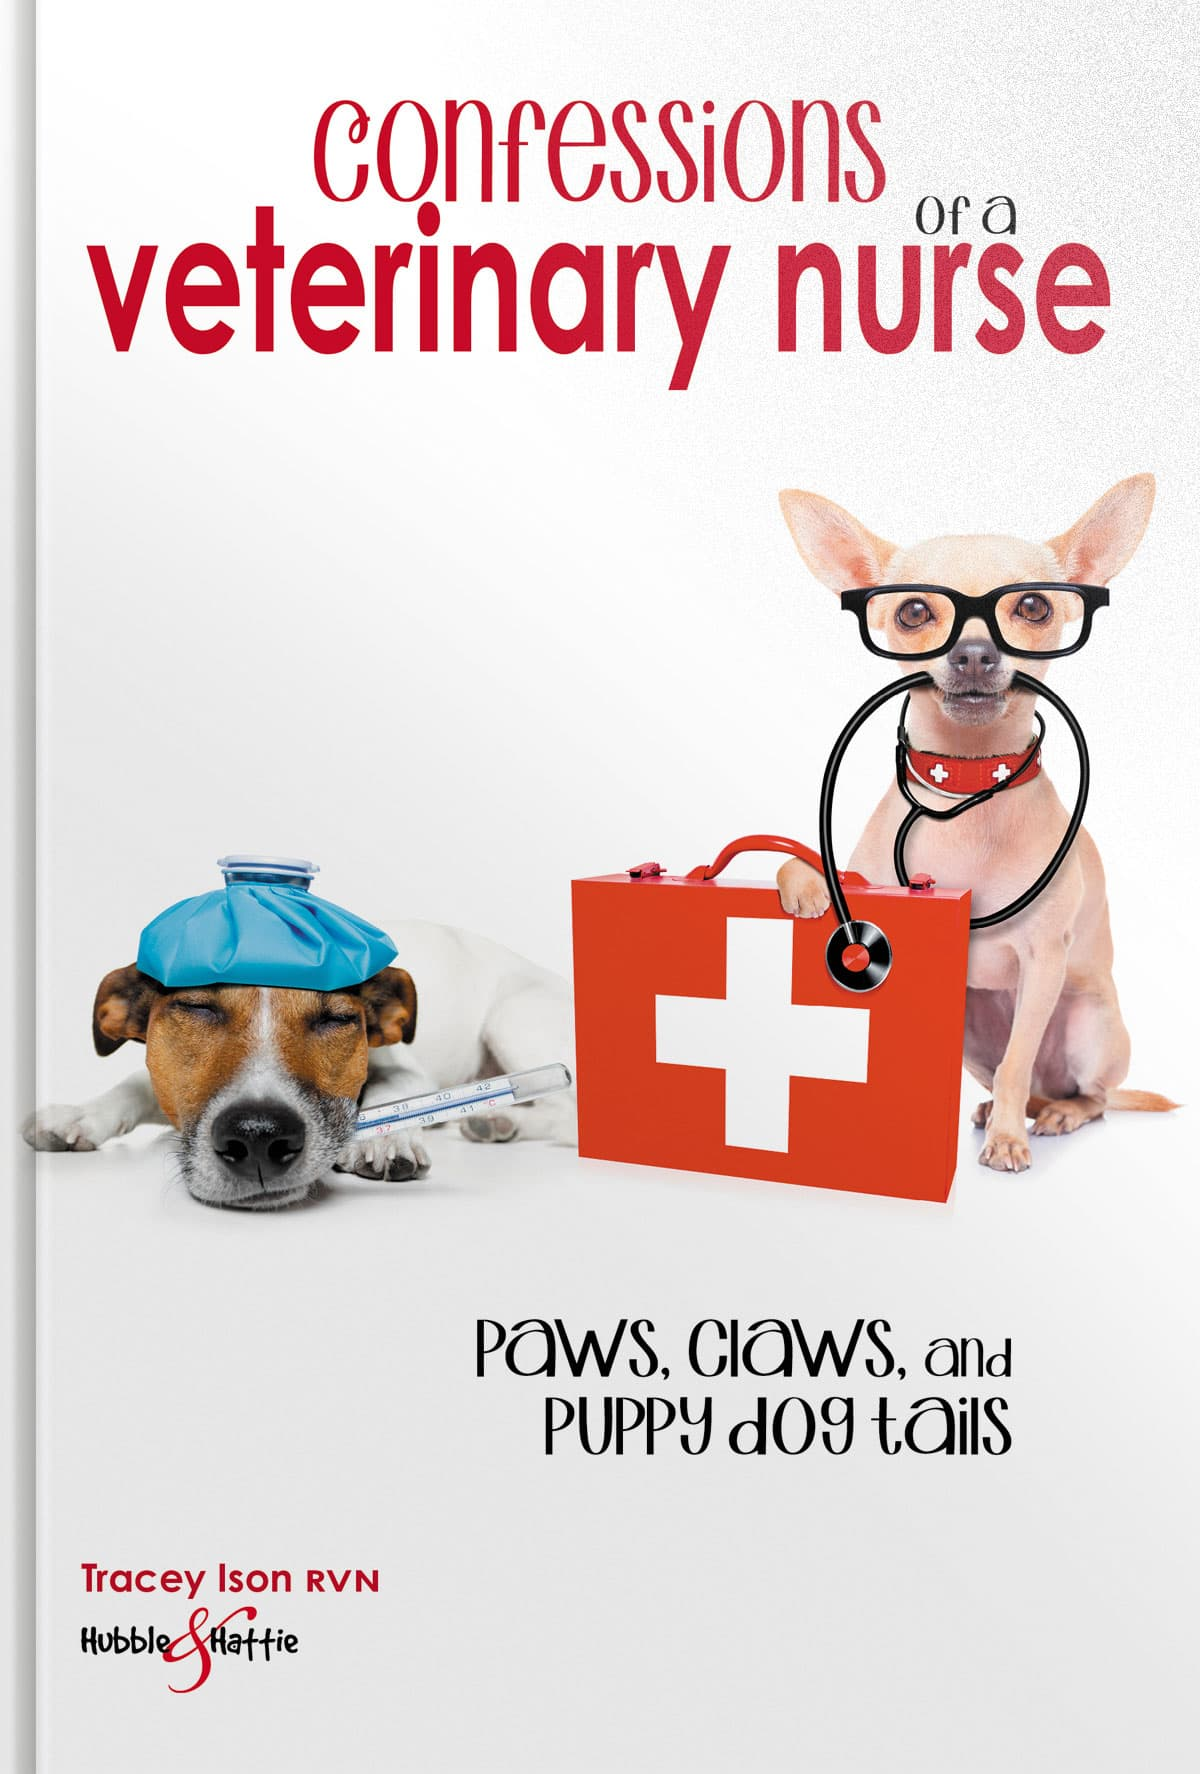 Confessions of a veterinary nurse –Paws, claws and puppy dog  tails